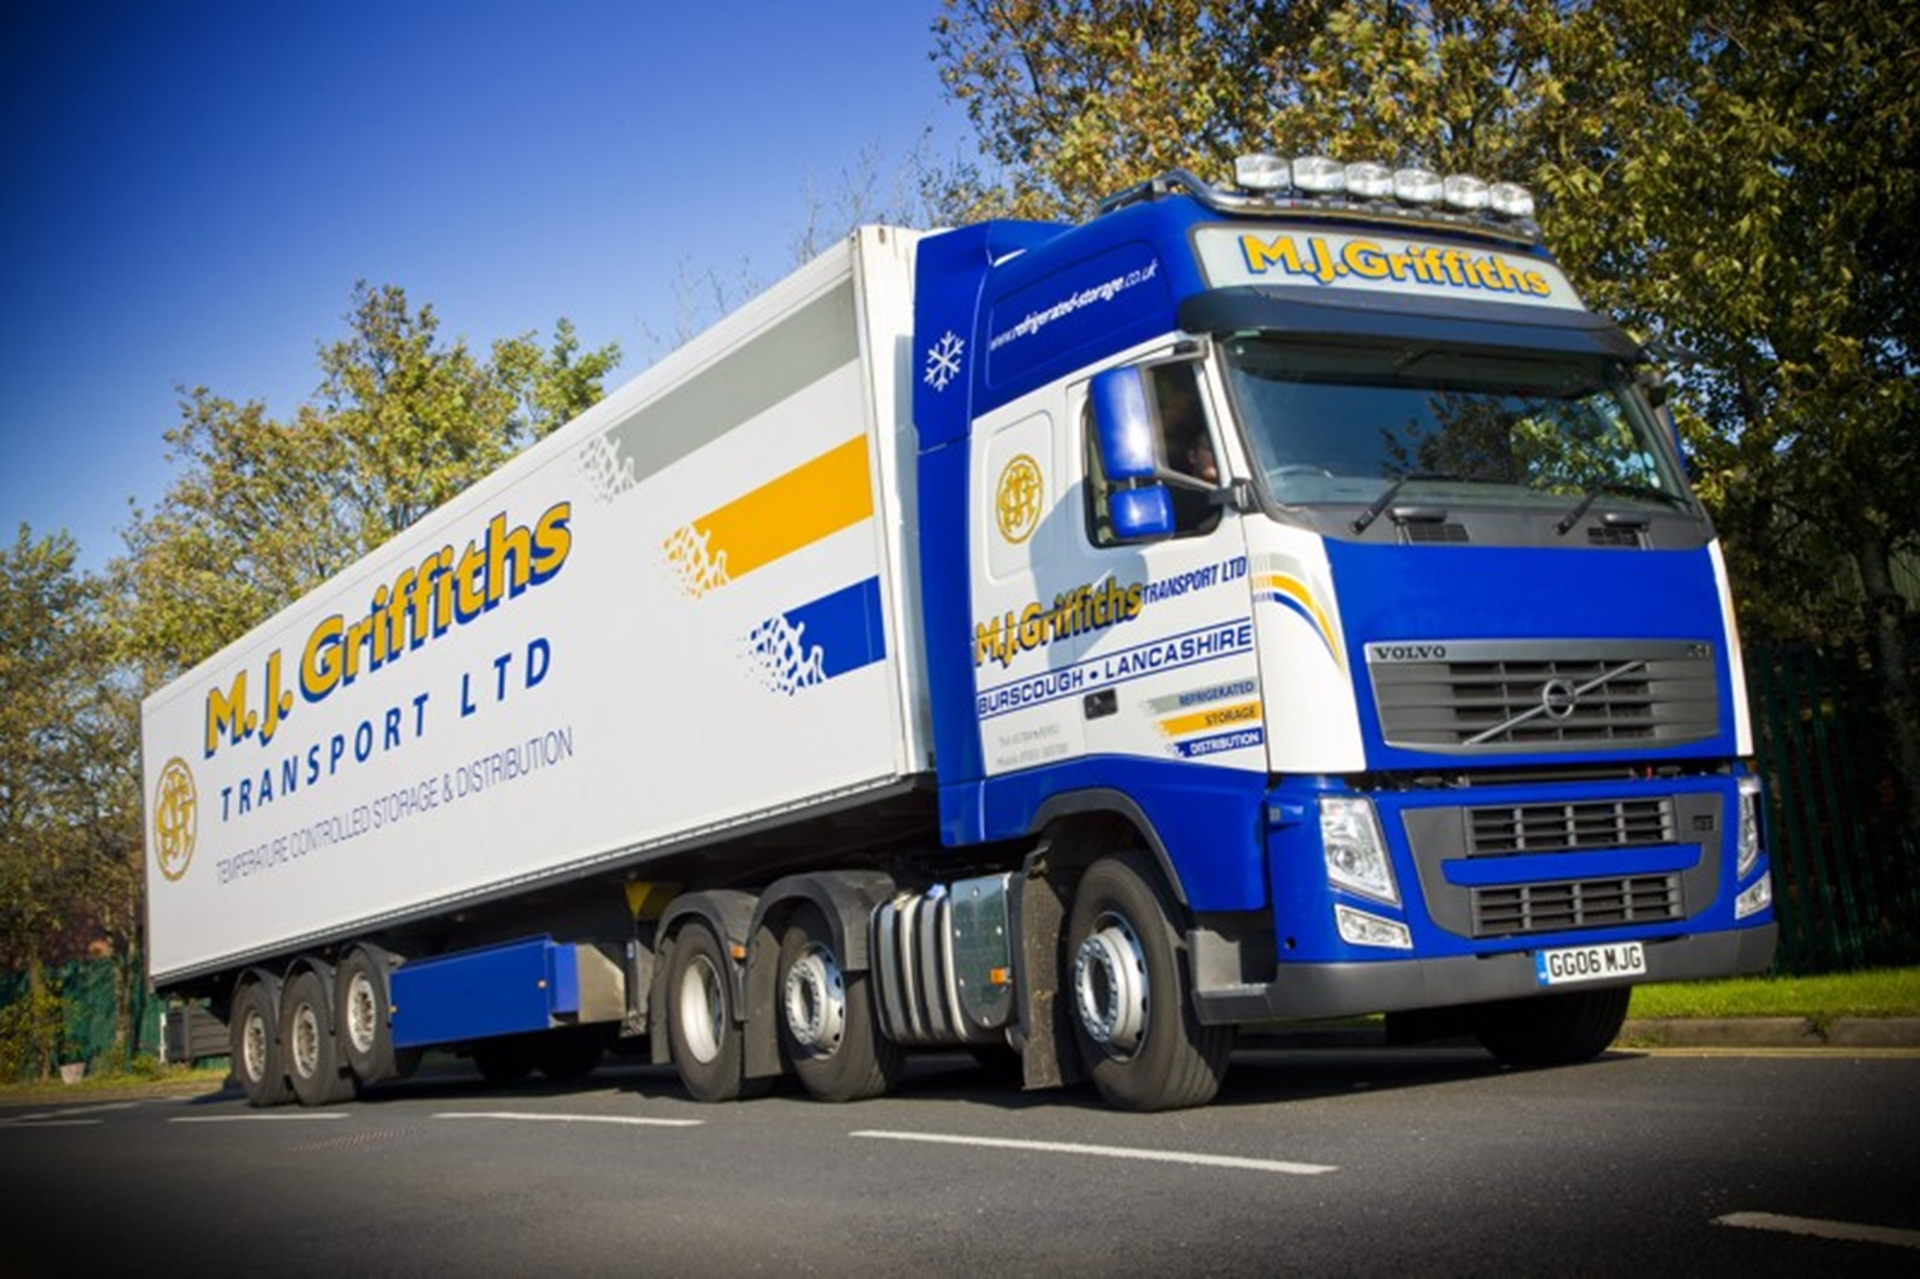 M J Griffiths Transport Ltd's new Volvo FH-500